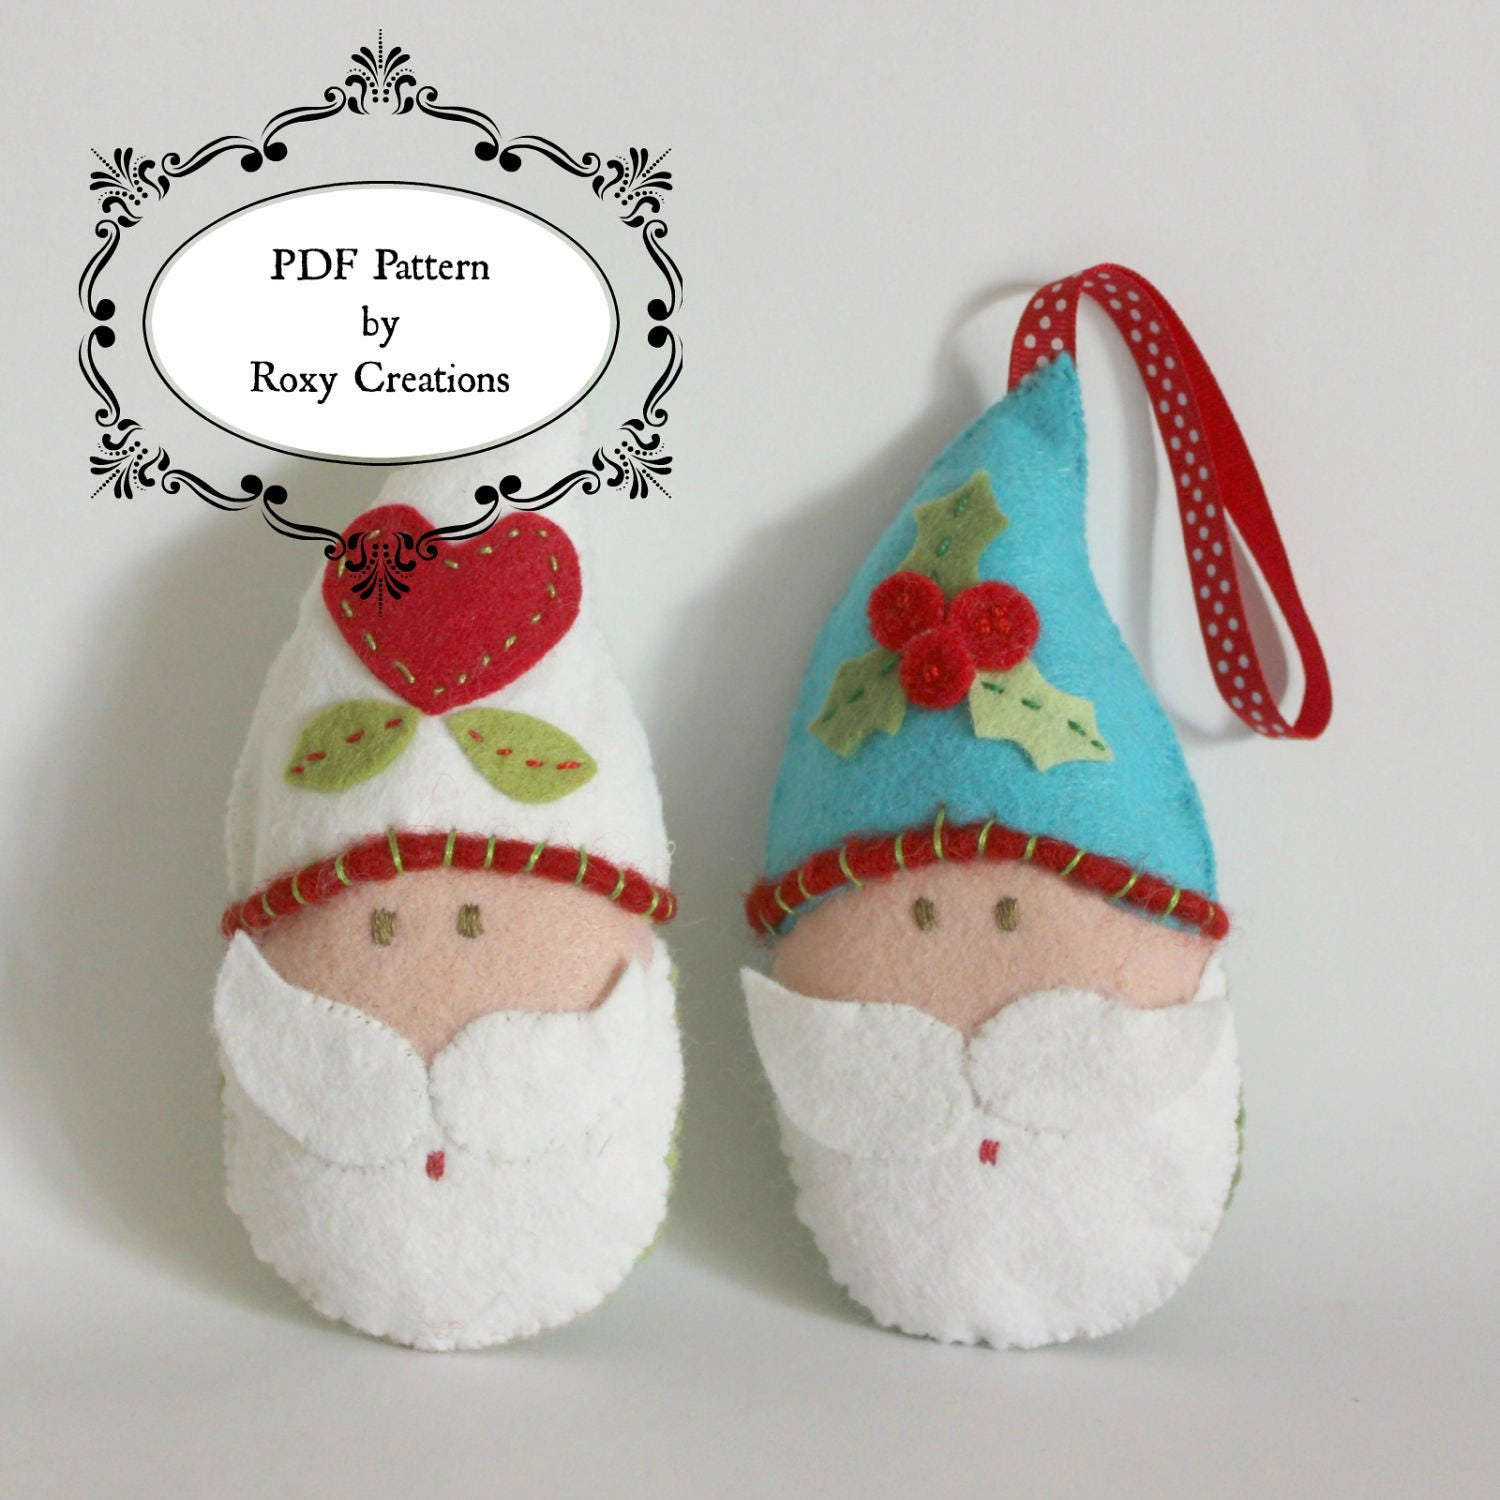 Wool felt ornaments - Pdf Sewing Pattern For Felt Santa Claus Ornaments Instant Download Make As A Gift For Gift